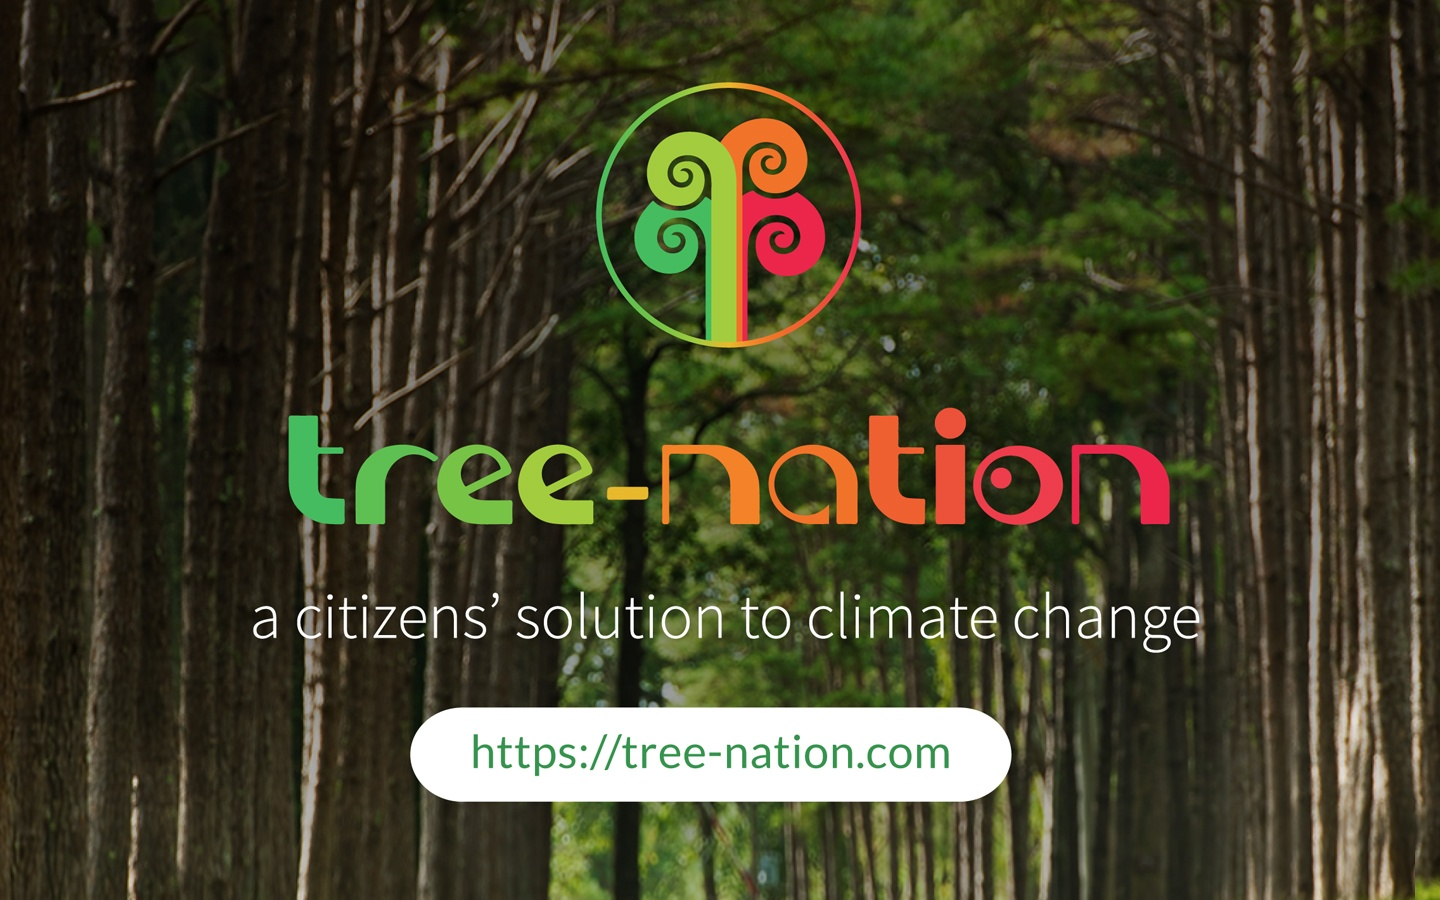 logo de tree-nation